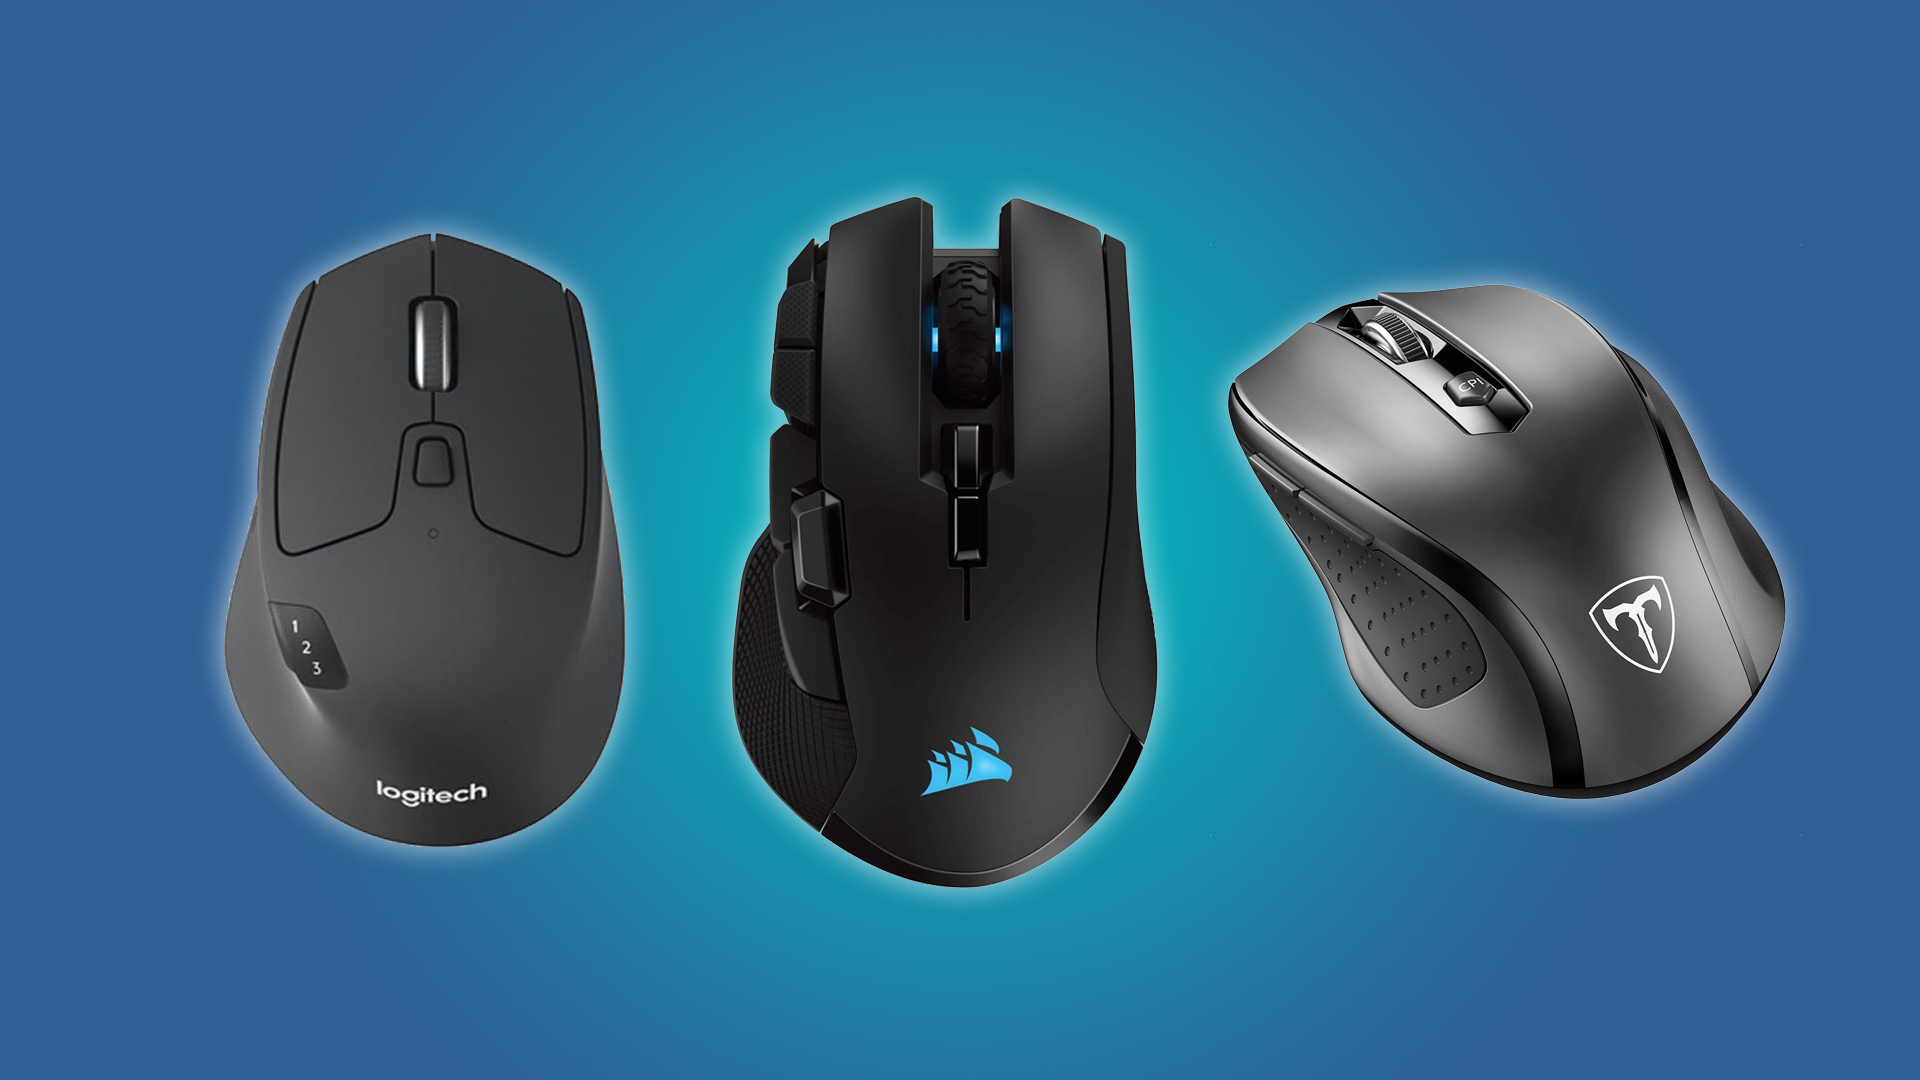 The Logitech Triathalon, the VicTsing MMO5, and the CORSAIR IRONCLAW